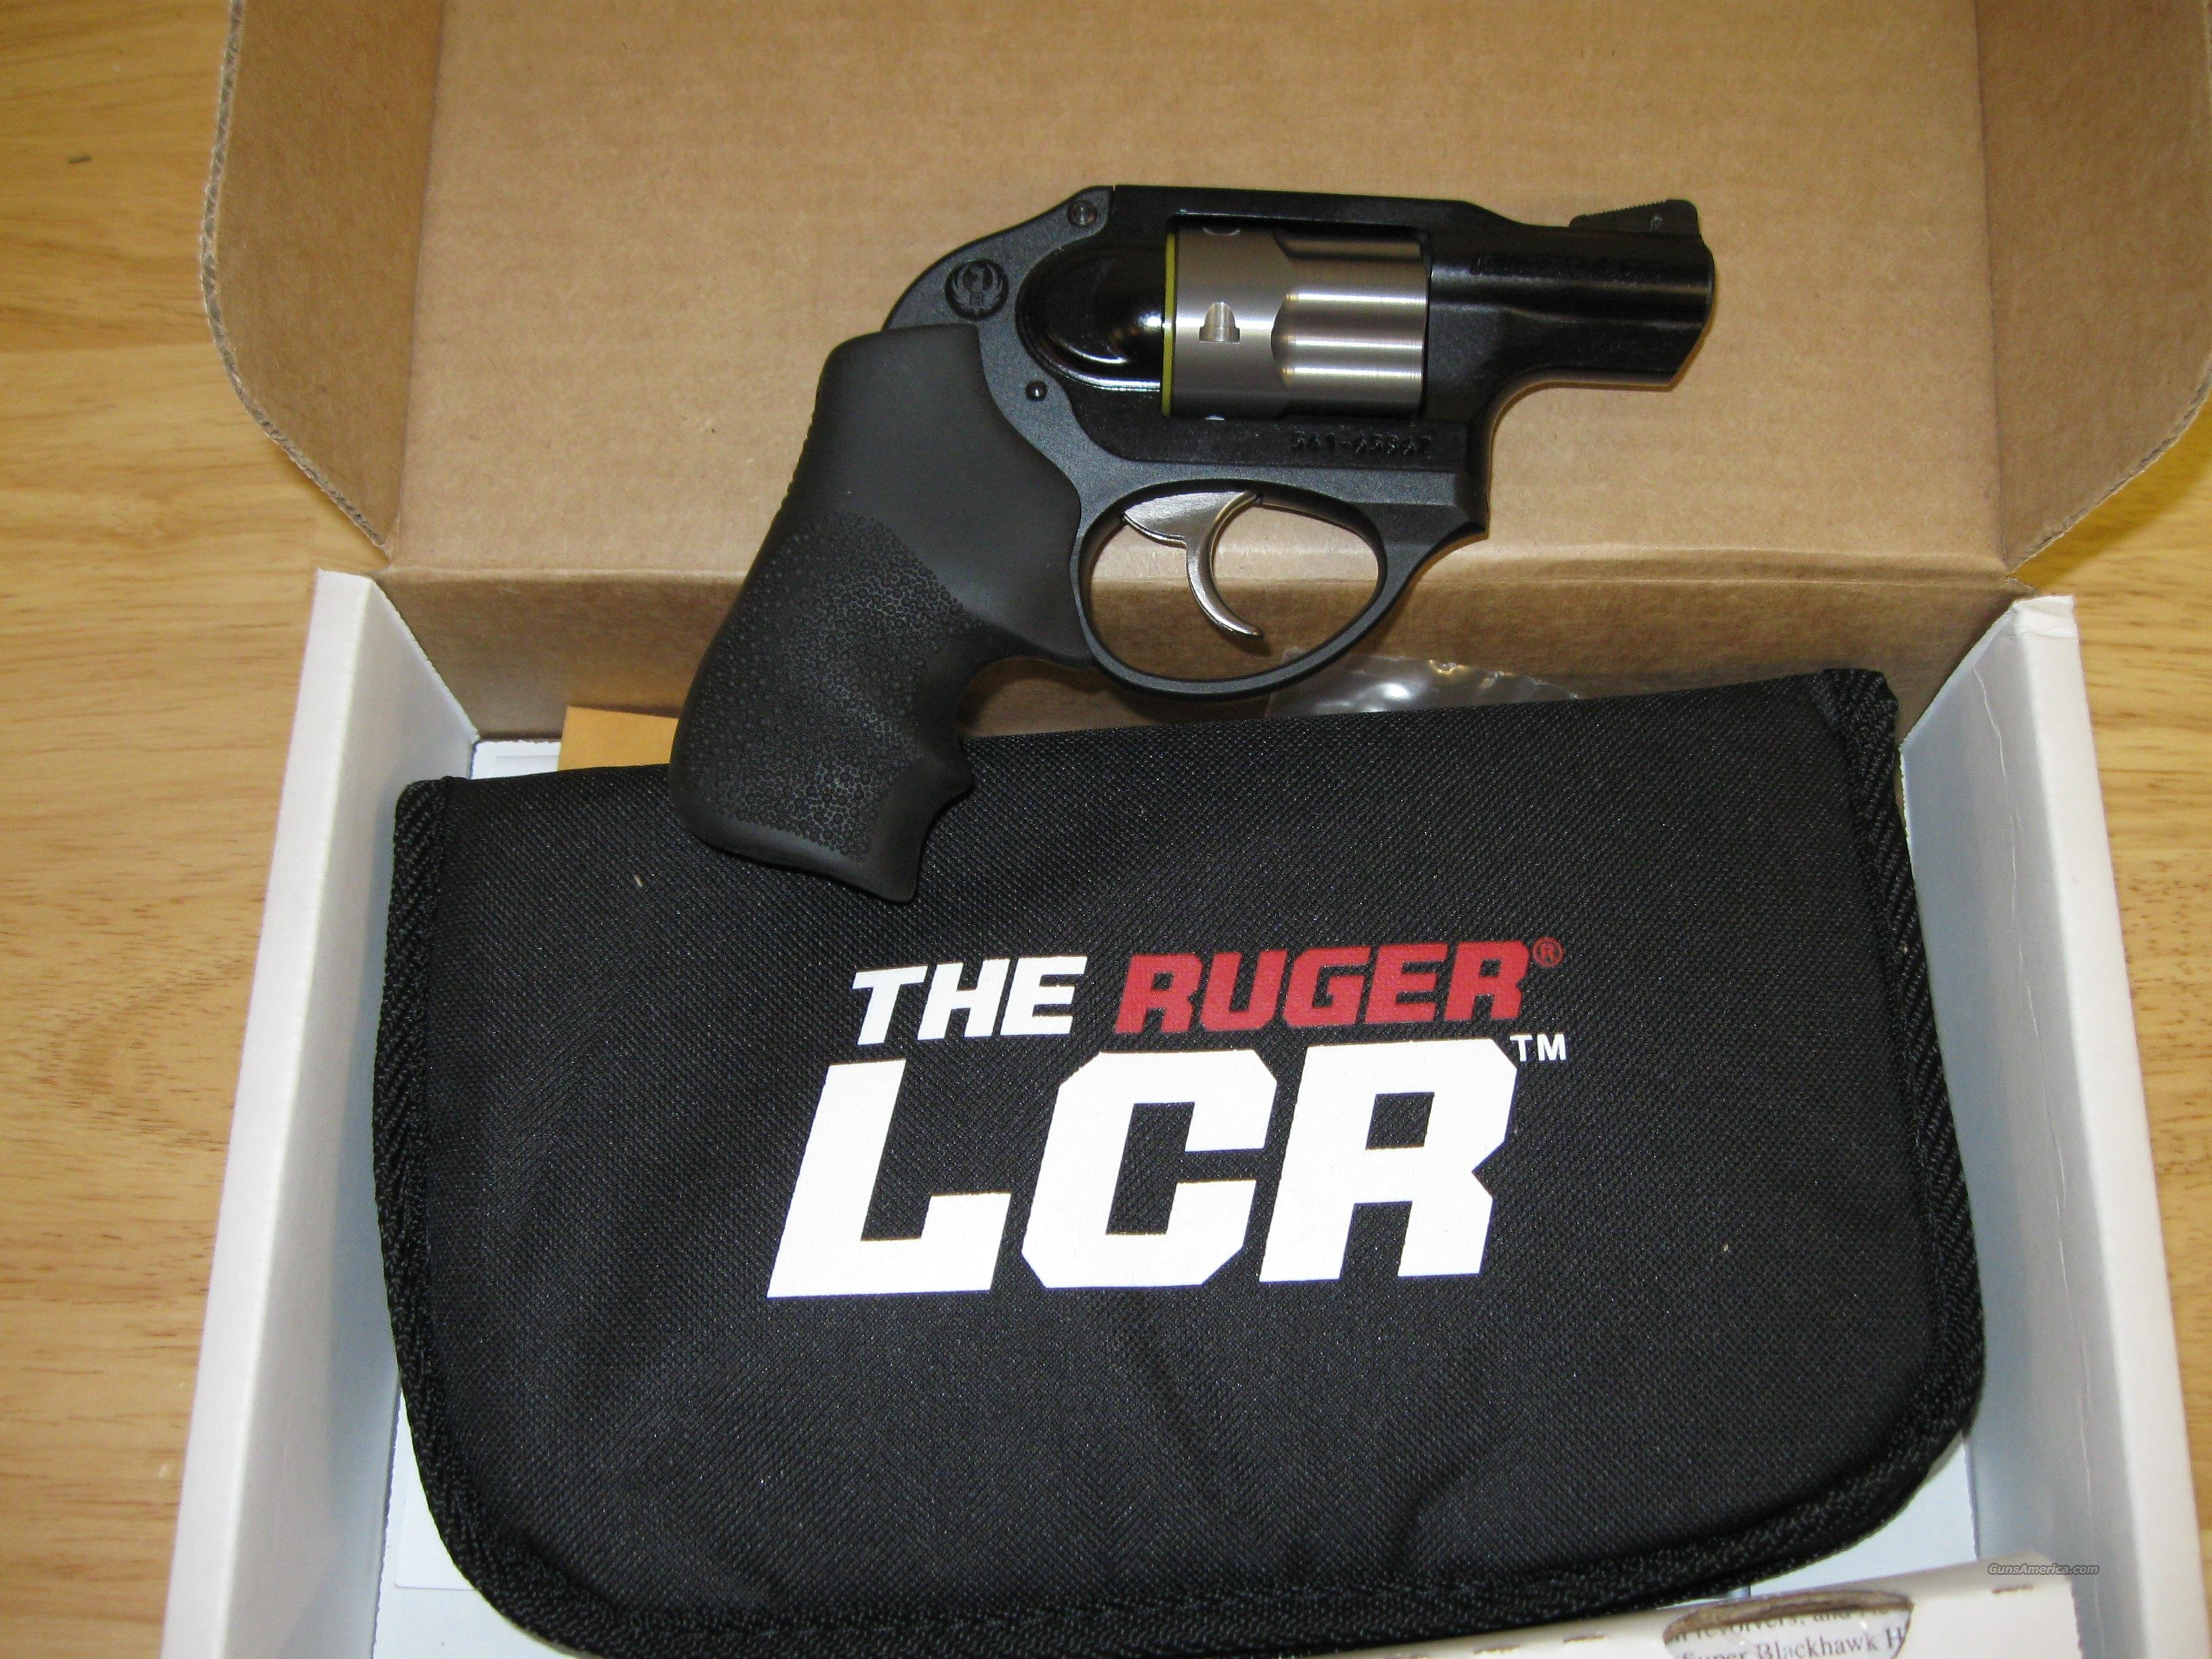 Ruger LCR Lightweight Compact Revolver 5401, 38 Special, 1.875 in, Hogue Grip, Matte Black Finish, 5 Rd  Guns > Pistols > Ruger Double Action Revolver > Security Six Type